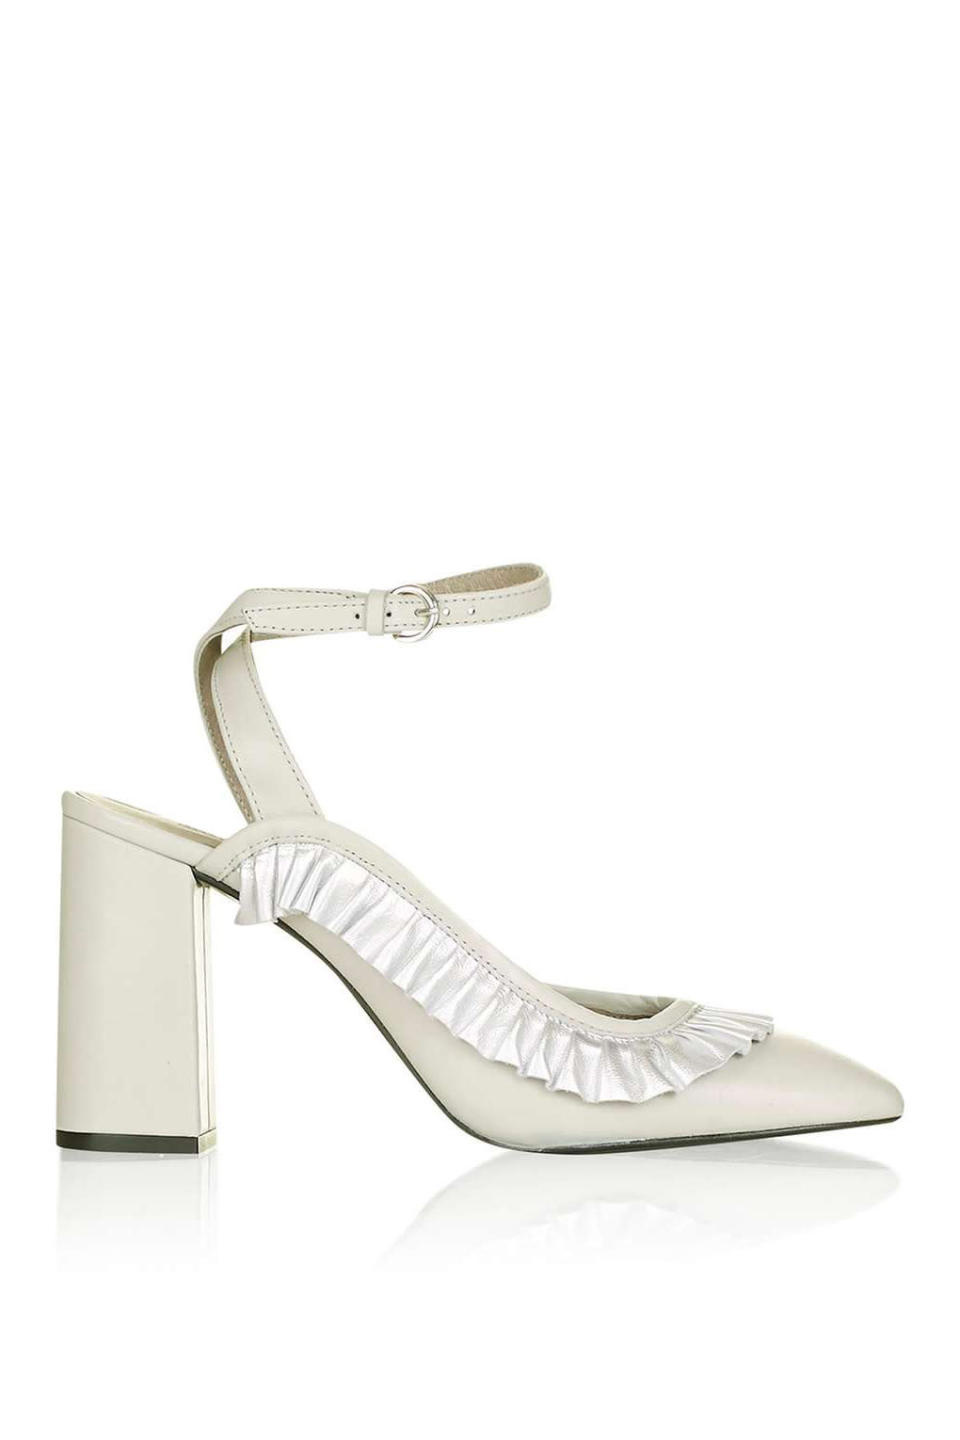 "<p>Gosh frill-detailed heels, $135, <a href=""http://us.topshop.com/en/tsus/product/gosh-frill-detailed-heel-shoes-5718397"" rel=""nofollow noopener"" target=""_blank"" data-ylk=""slk:Topshop"" class=""link rapid-noclick-resp"">Topshop</a></p>"